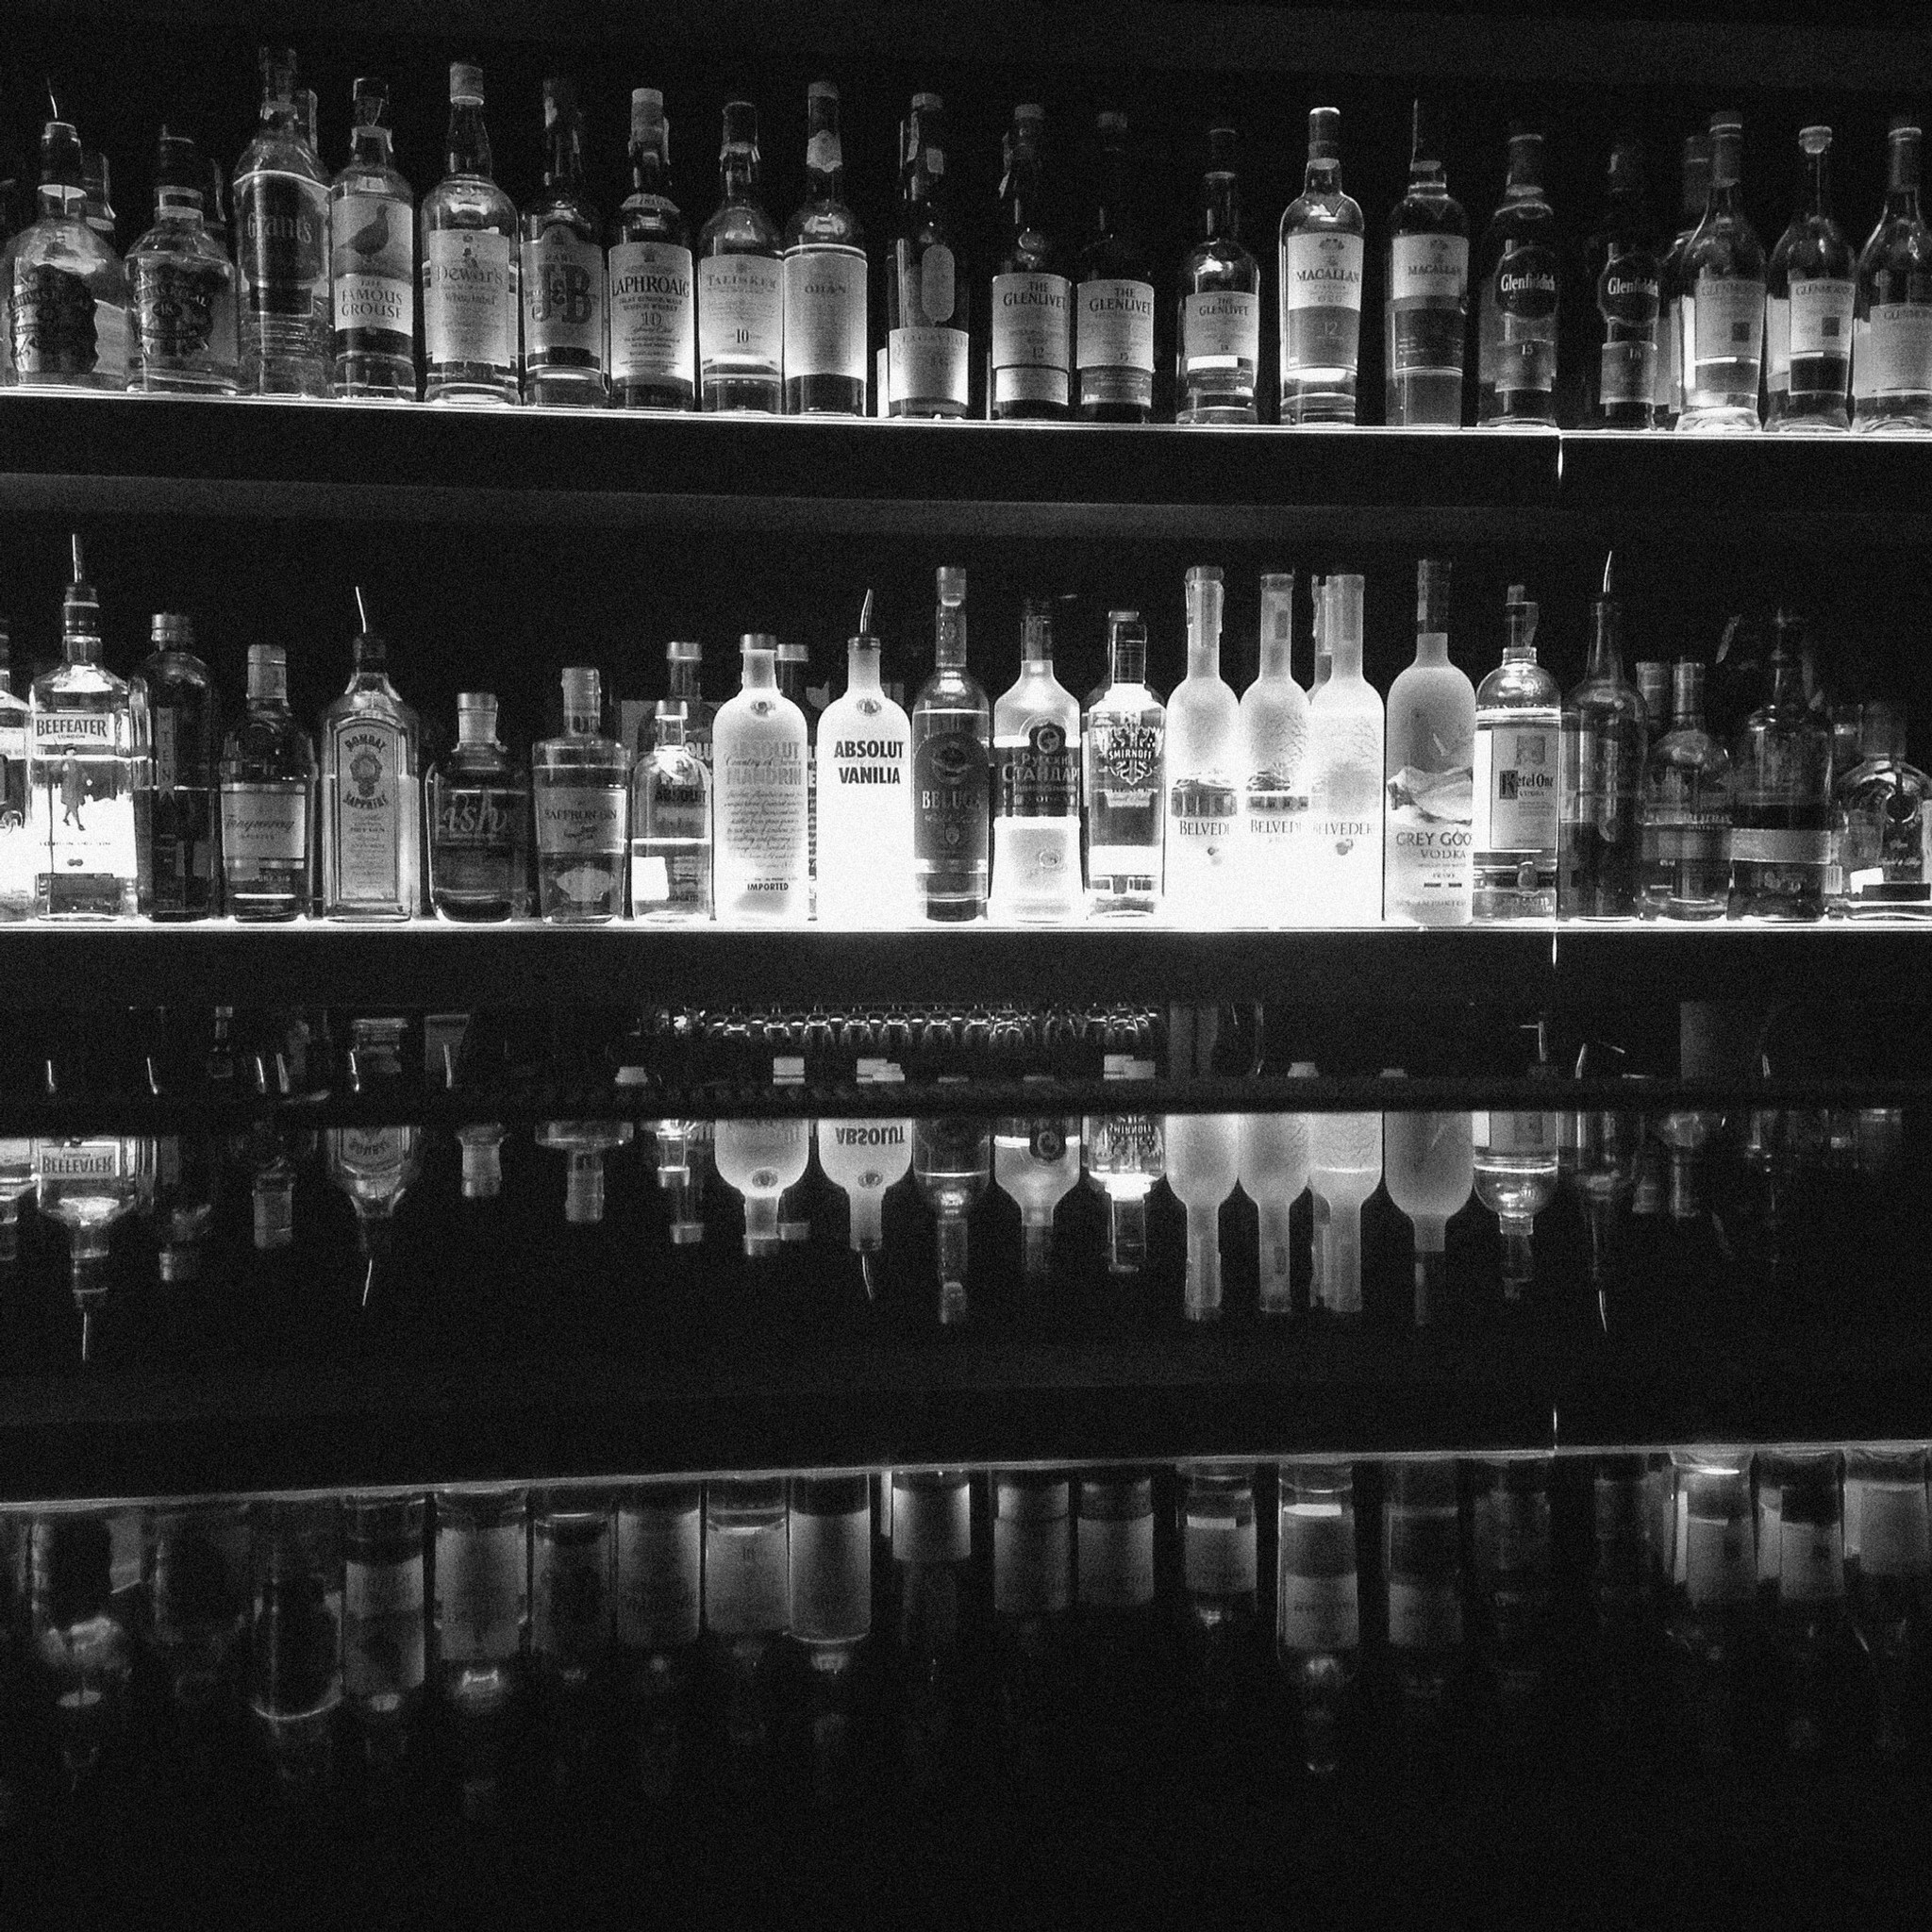 Bartending Service Only (Up to 300 guest